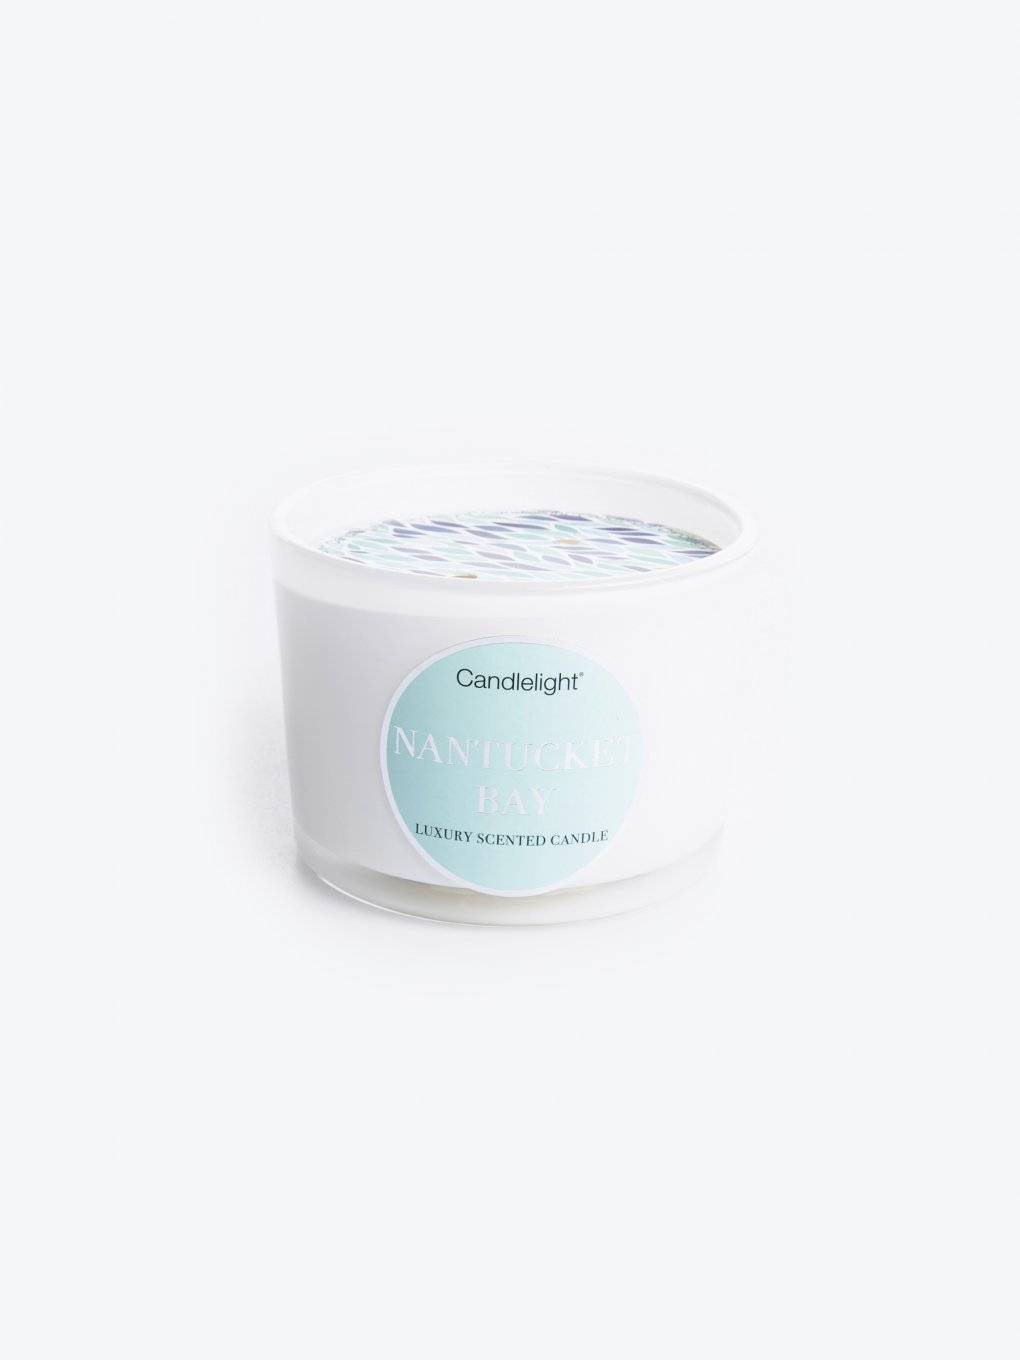 Nantucket bay scented candle